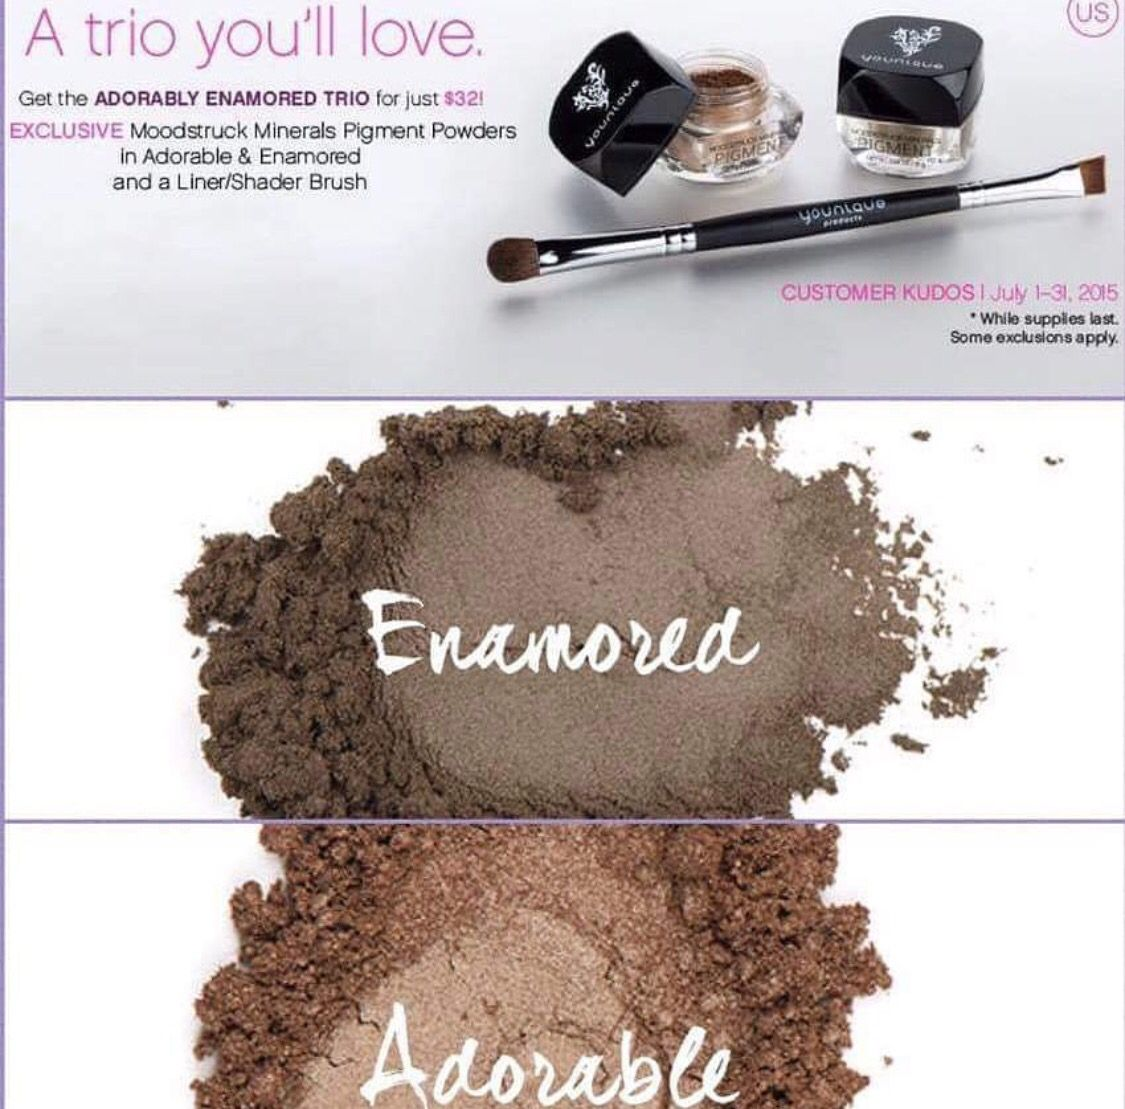 Younique's July Kudos!!